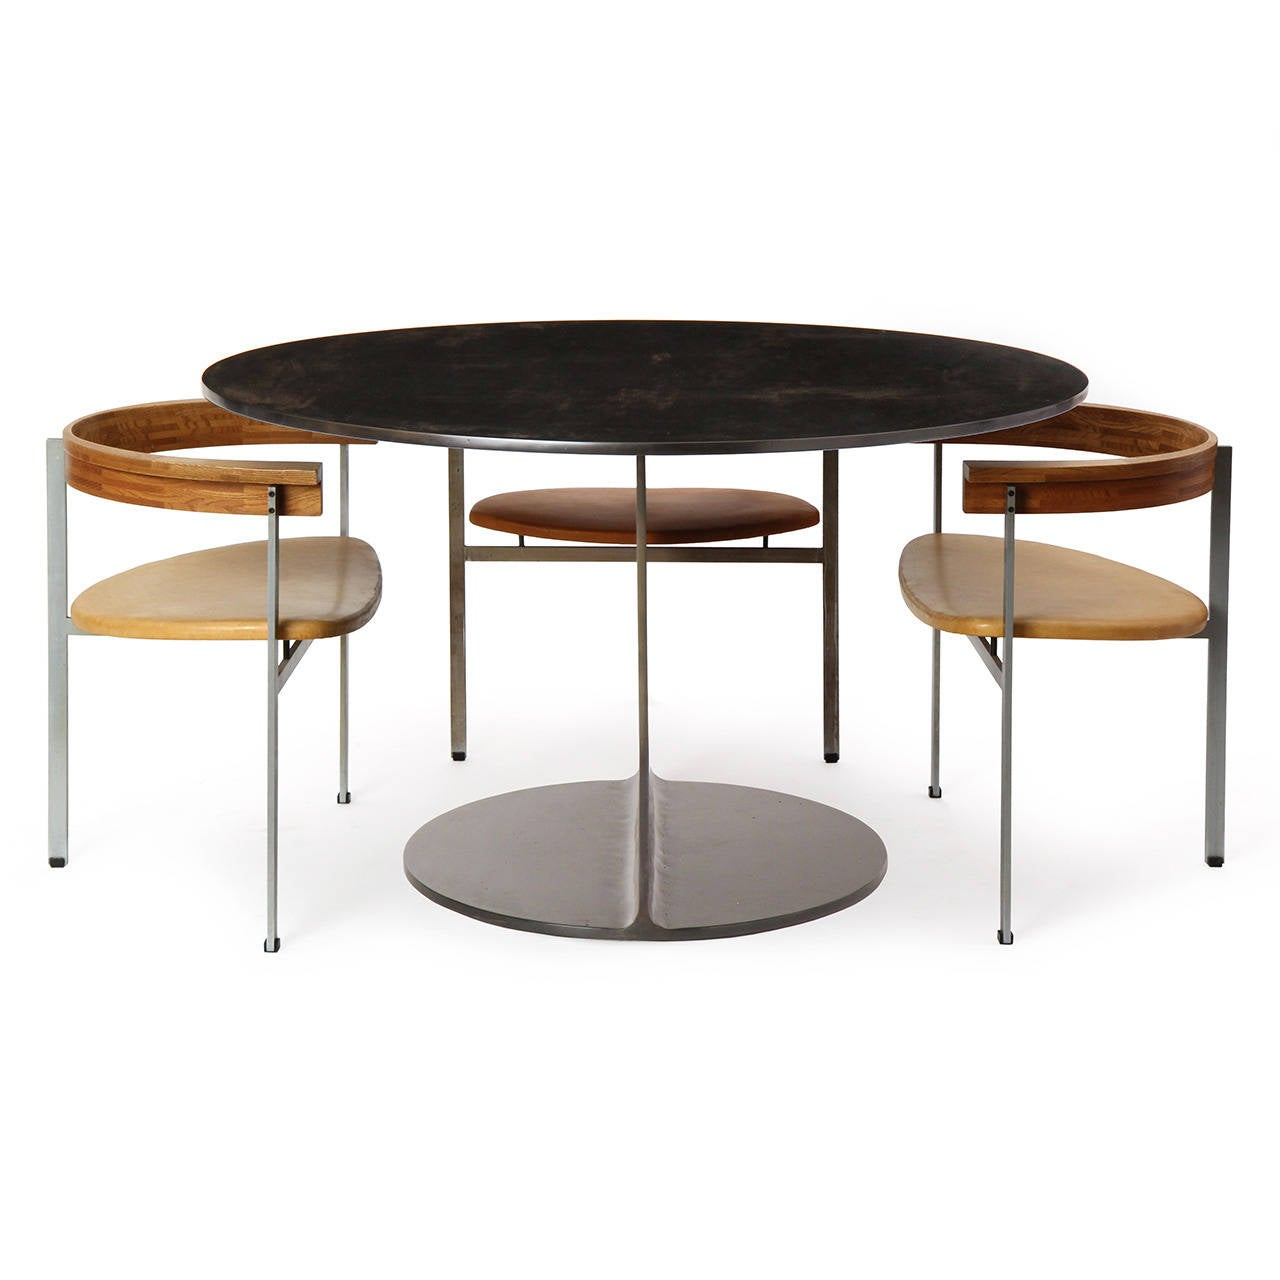 An I-Beam 'Gong' table of great weight and stability, crafted of cut, welded and polished steel.